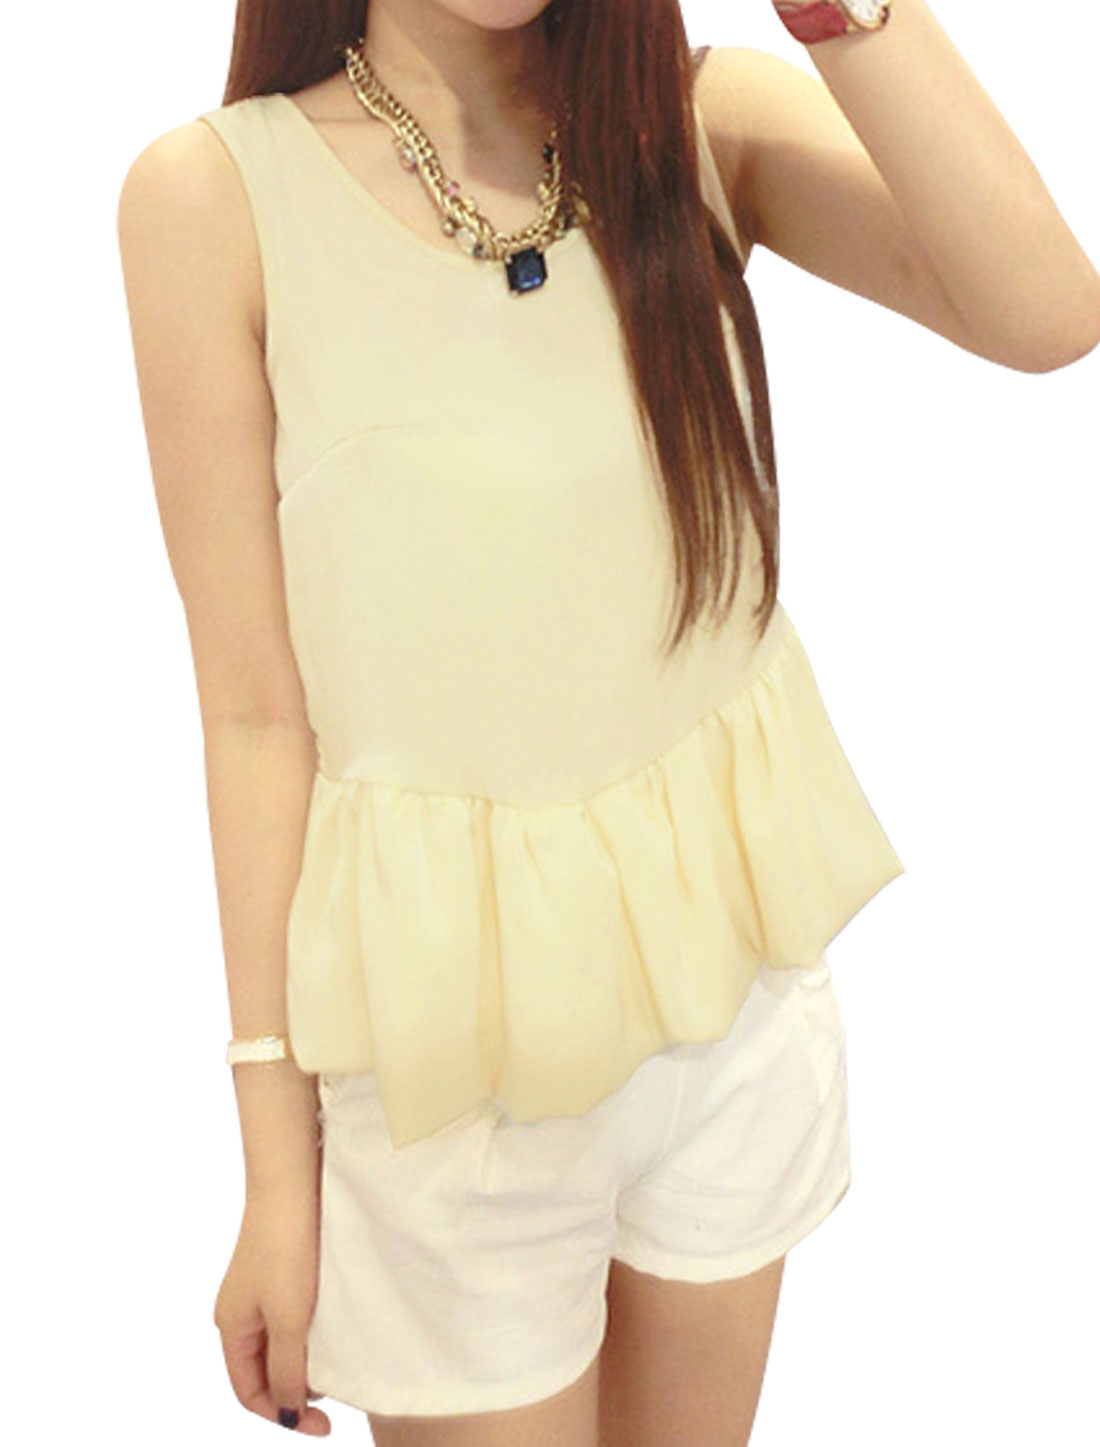 Lady Round Neck Sleeveless Flounce Hem Ruched Detail Tank Top Light Yellow S